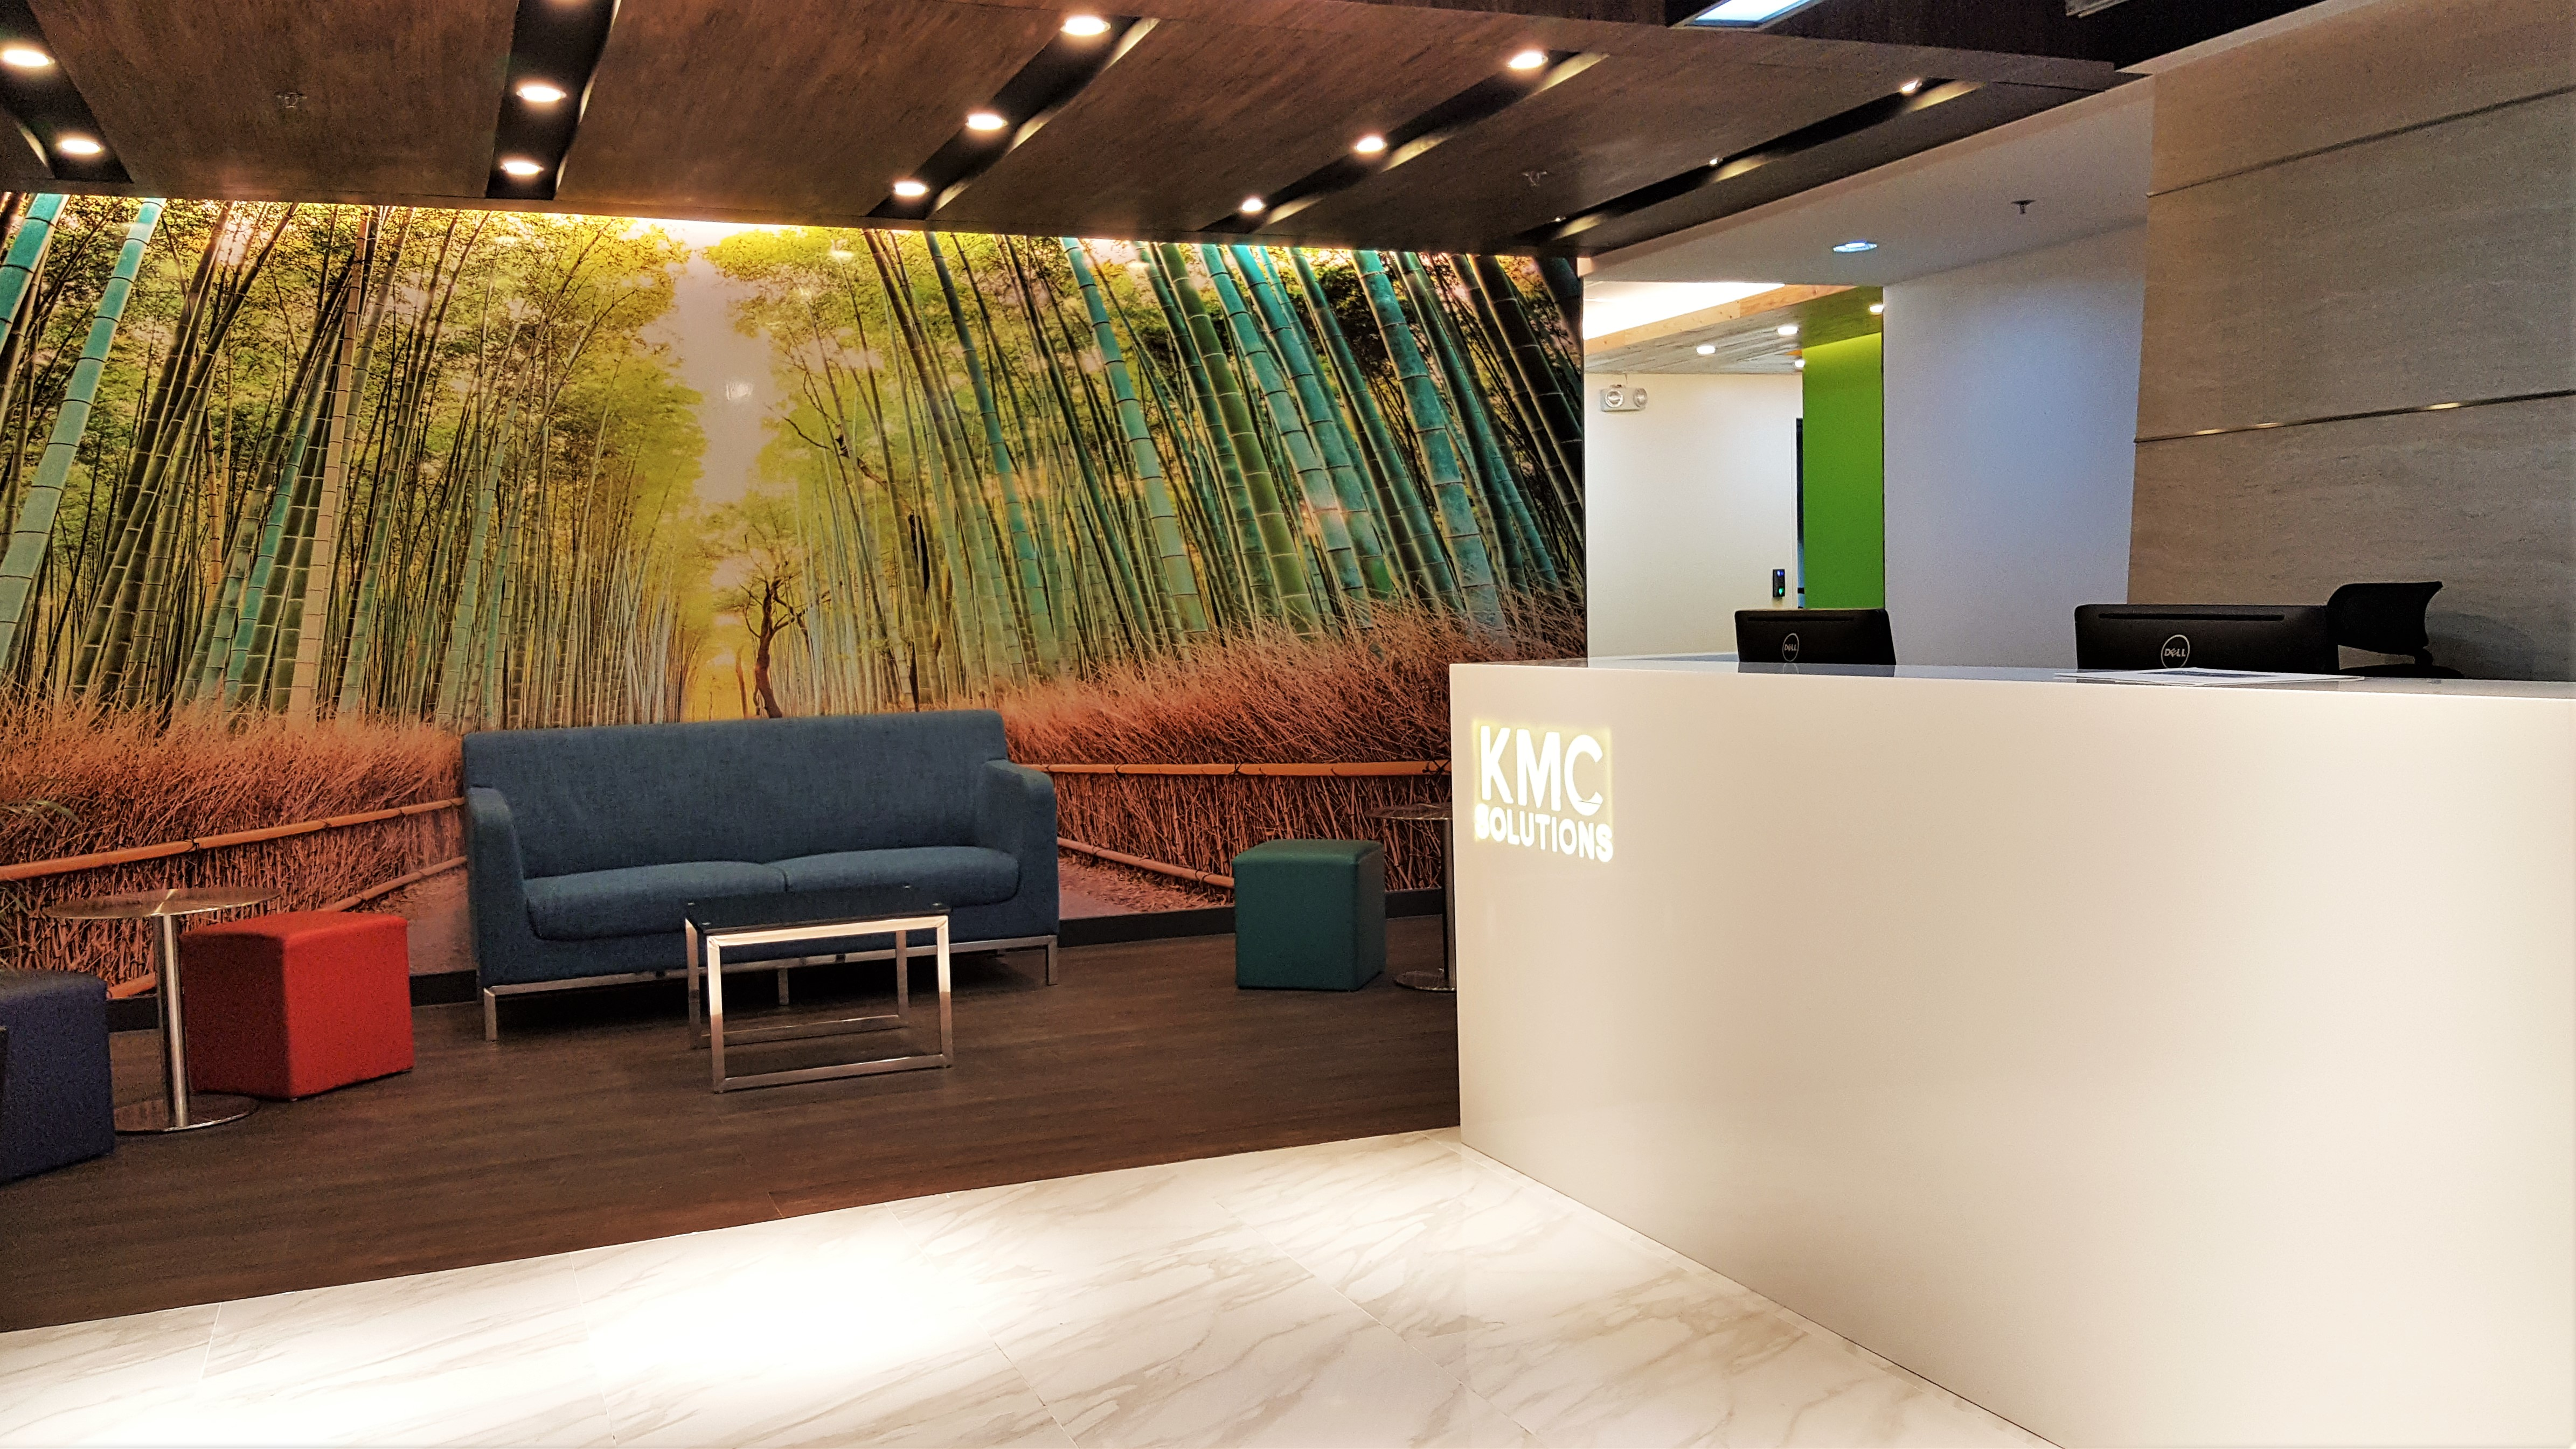 KMC Reception Area at V Corporate Centre Office in Makati